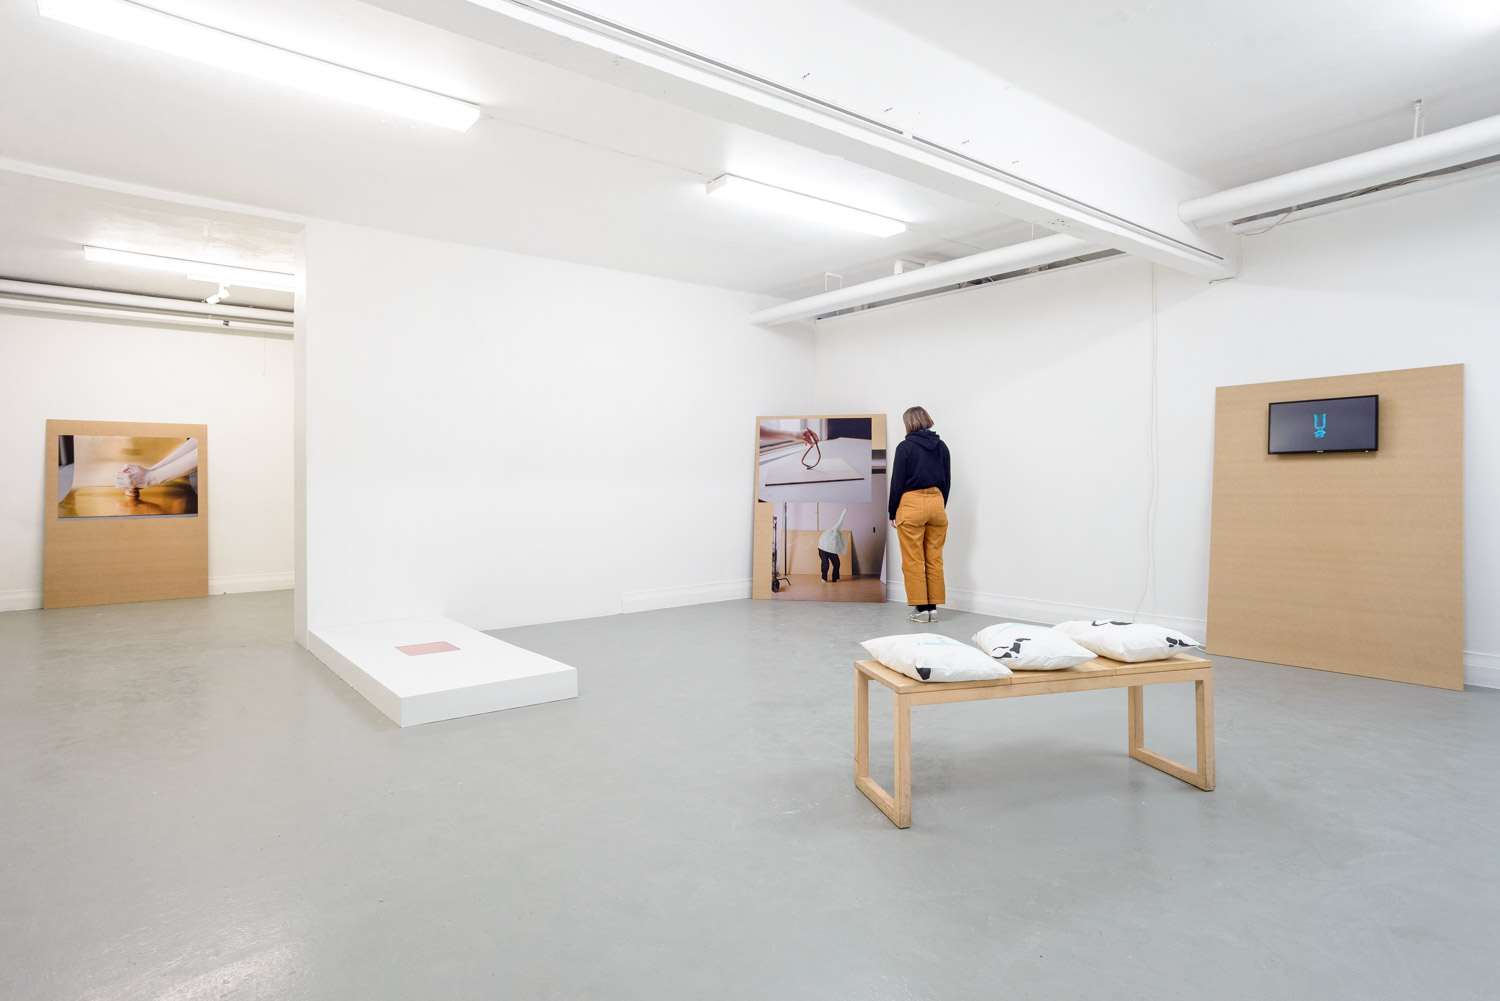 contemporary art installation in a white gallery and a visitor